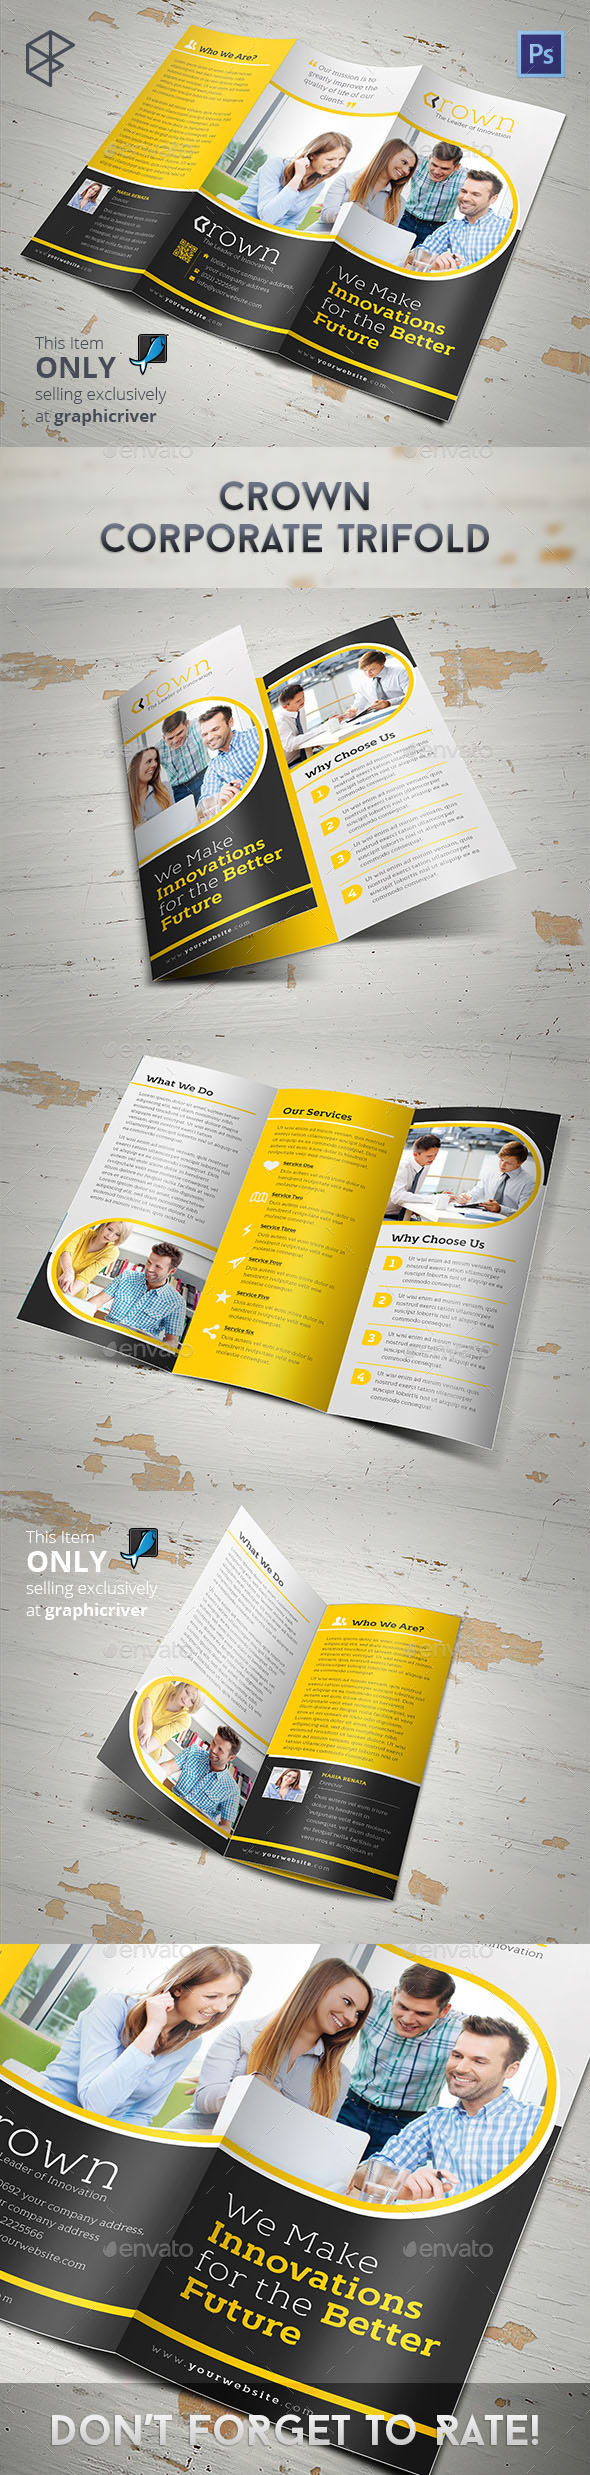 GraphicRiver Crown Corporate Trifold 10982764